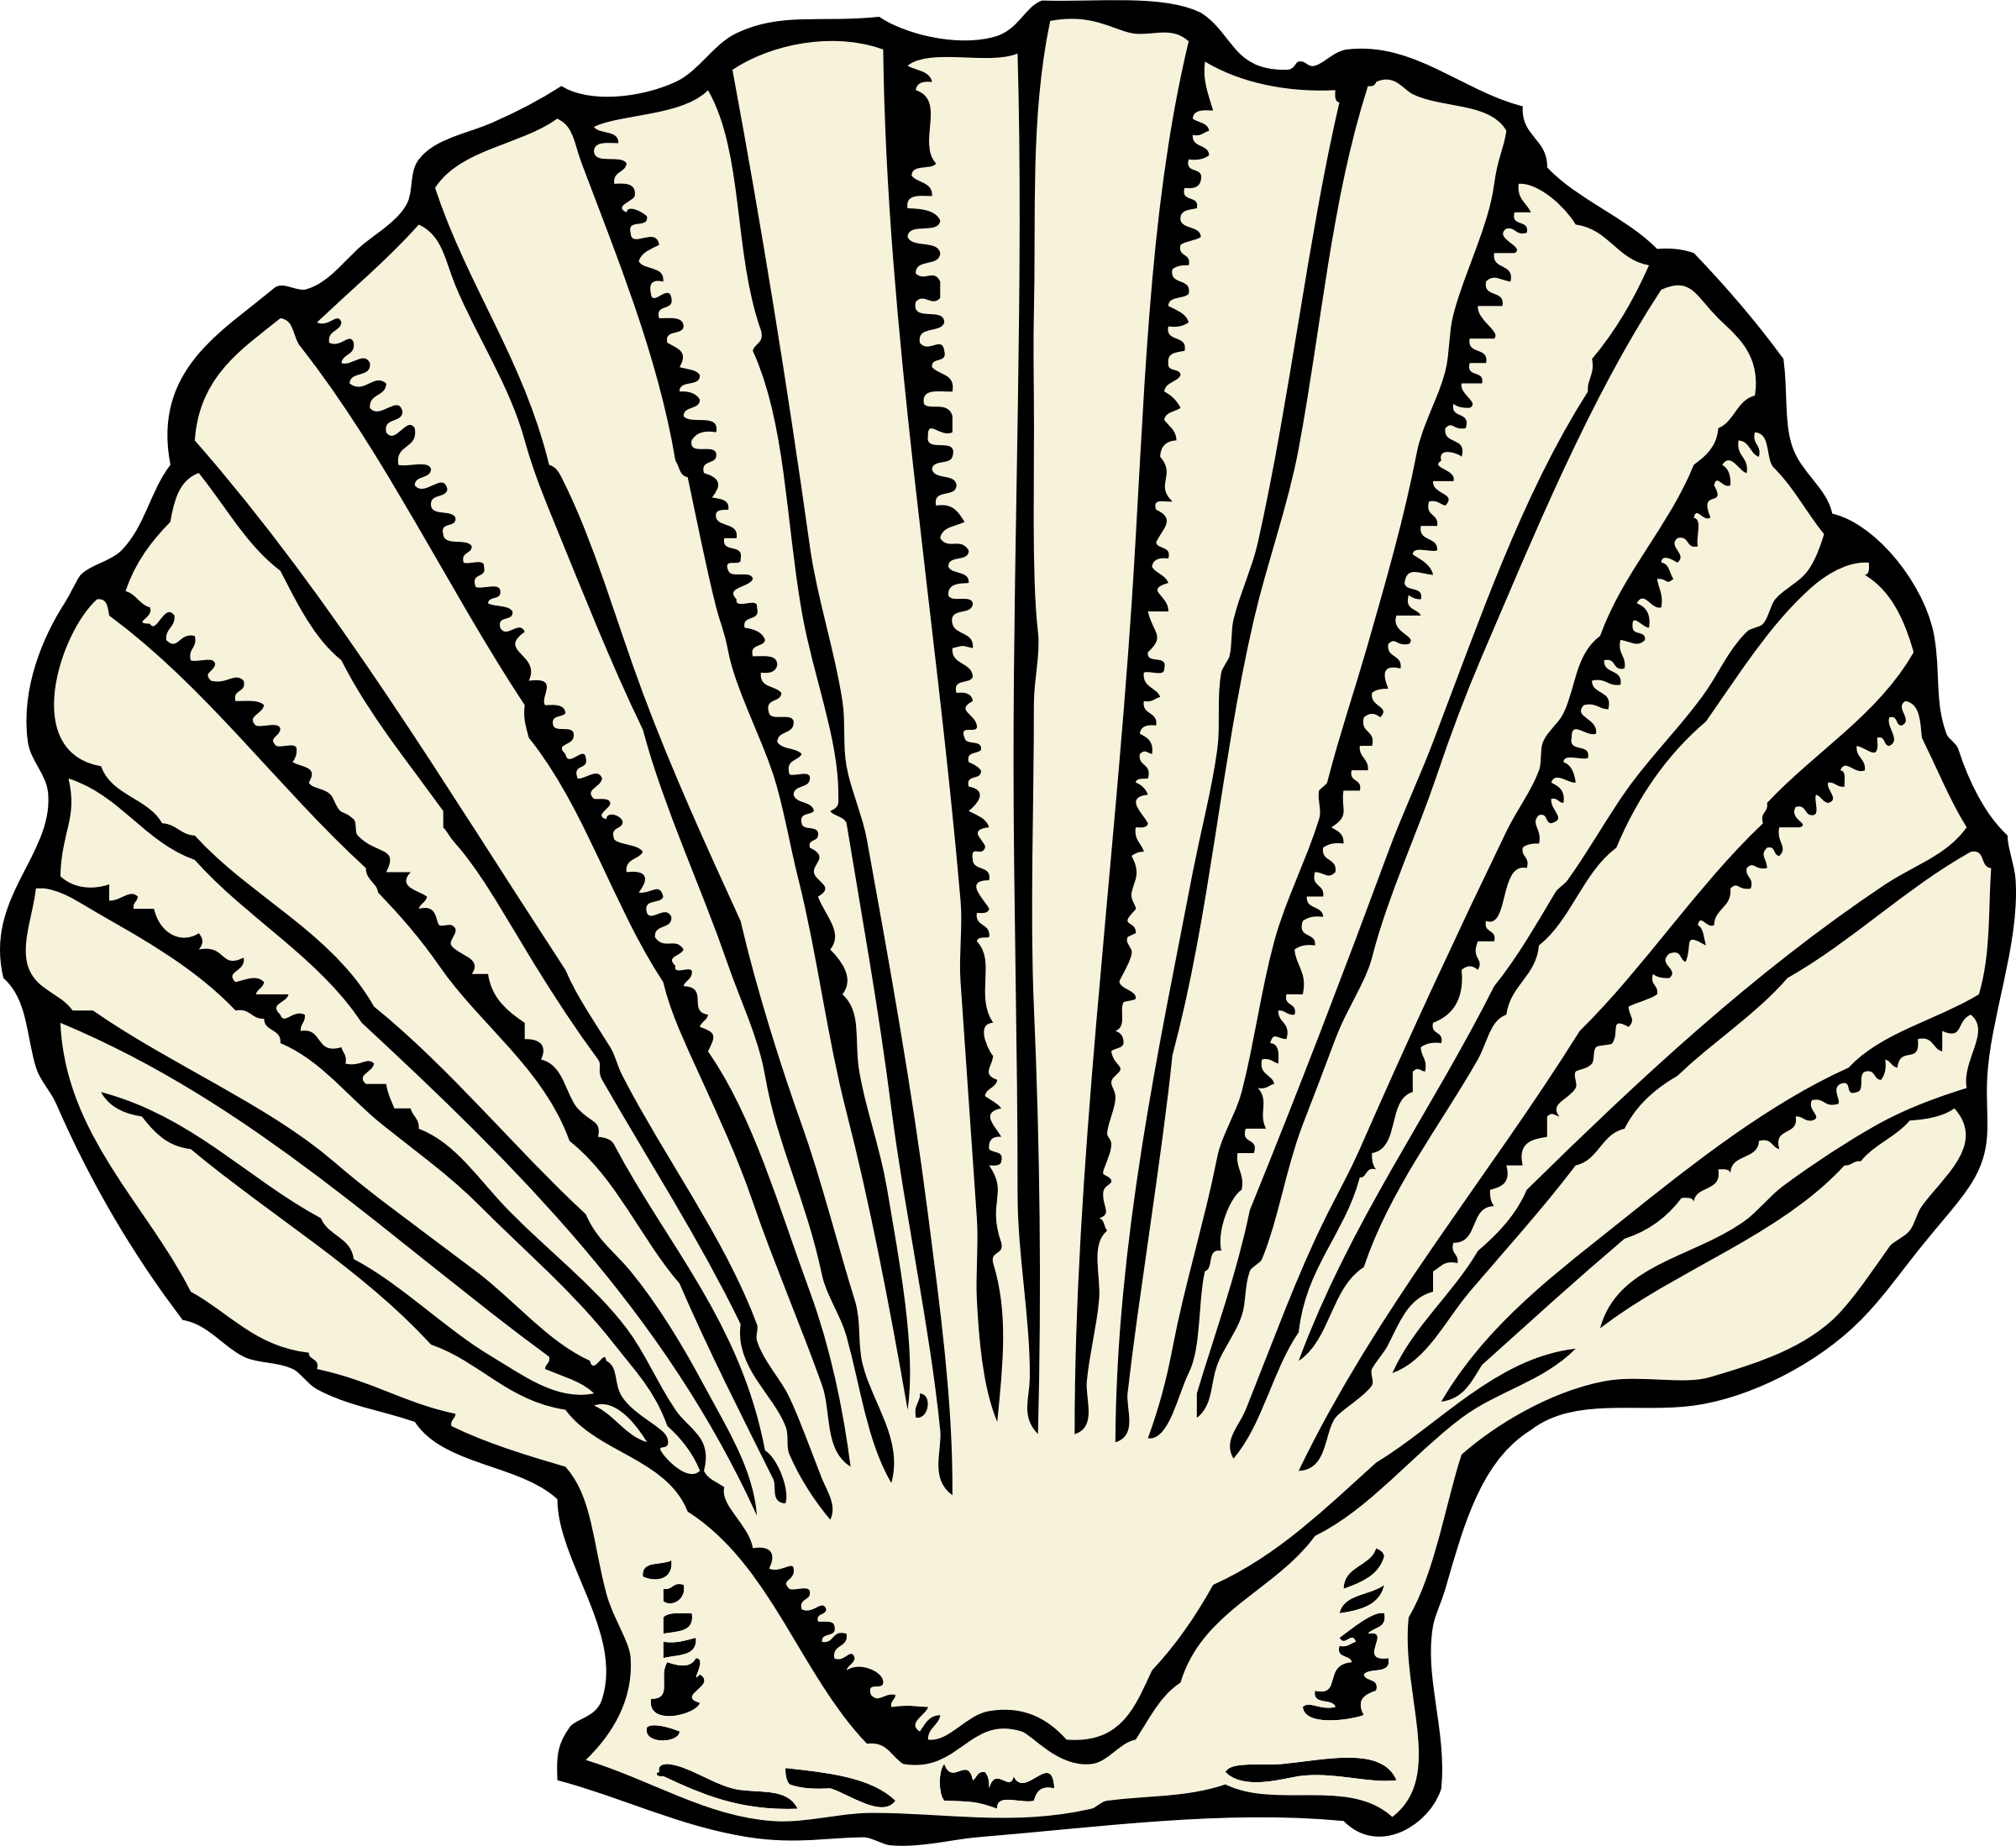 Oyster shell clipart picture transparent library Oyster Shell Drawing   Free download best Oyster Shell ... picture transparent library